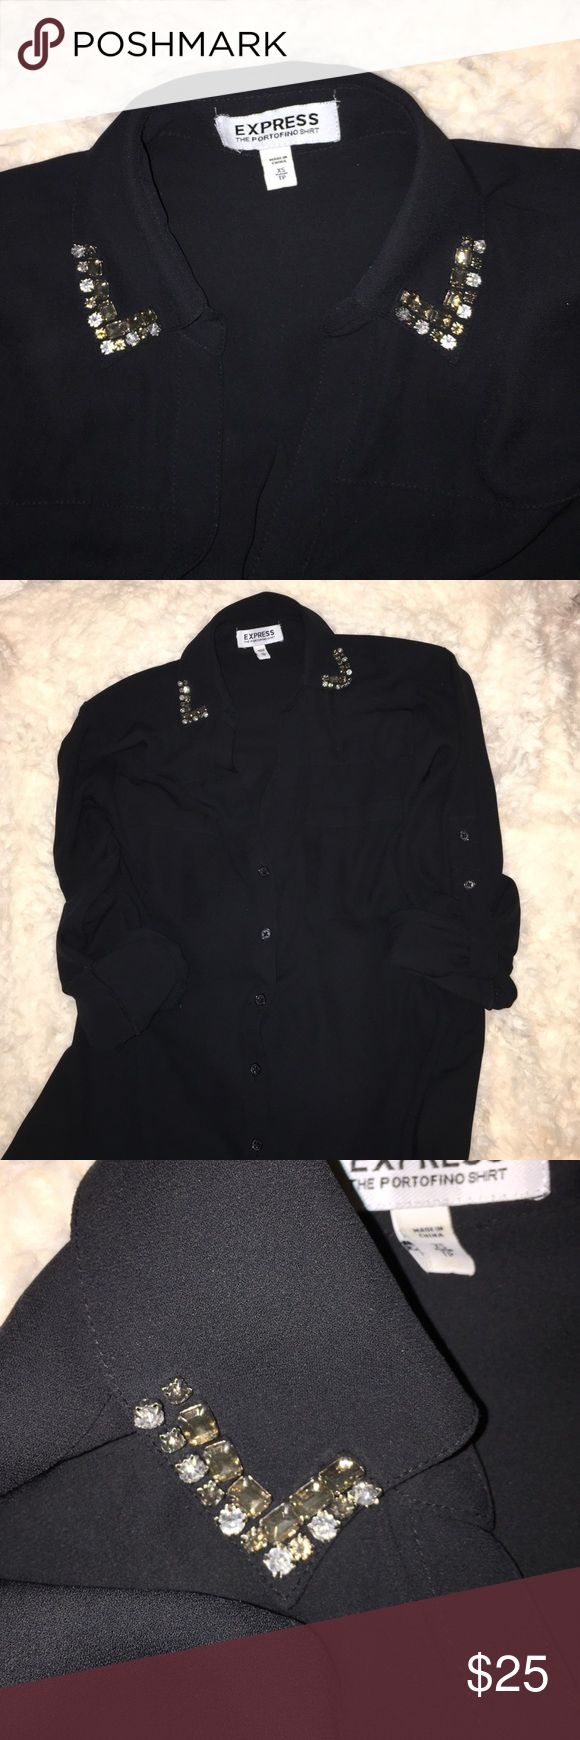 Button Down Blouse Solid black with sequins on ends of collar. No loose or damaged stones. Stone colors are silver, gunmetal and a pale gold. Has convertible sleeves- meaning two buttons to adjust height when rolled up or flattering option to have them down at wrist length. Express Tops Button Down Shirts